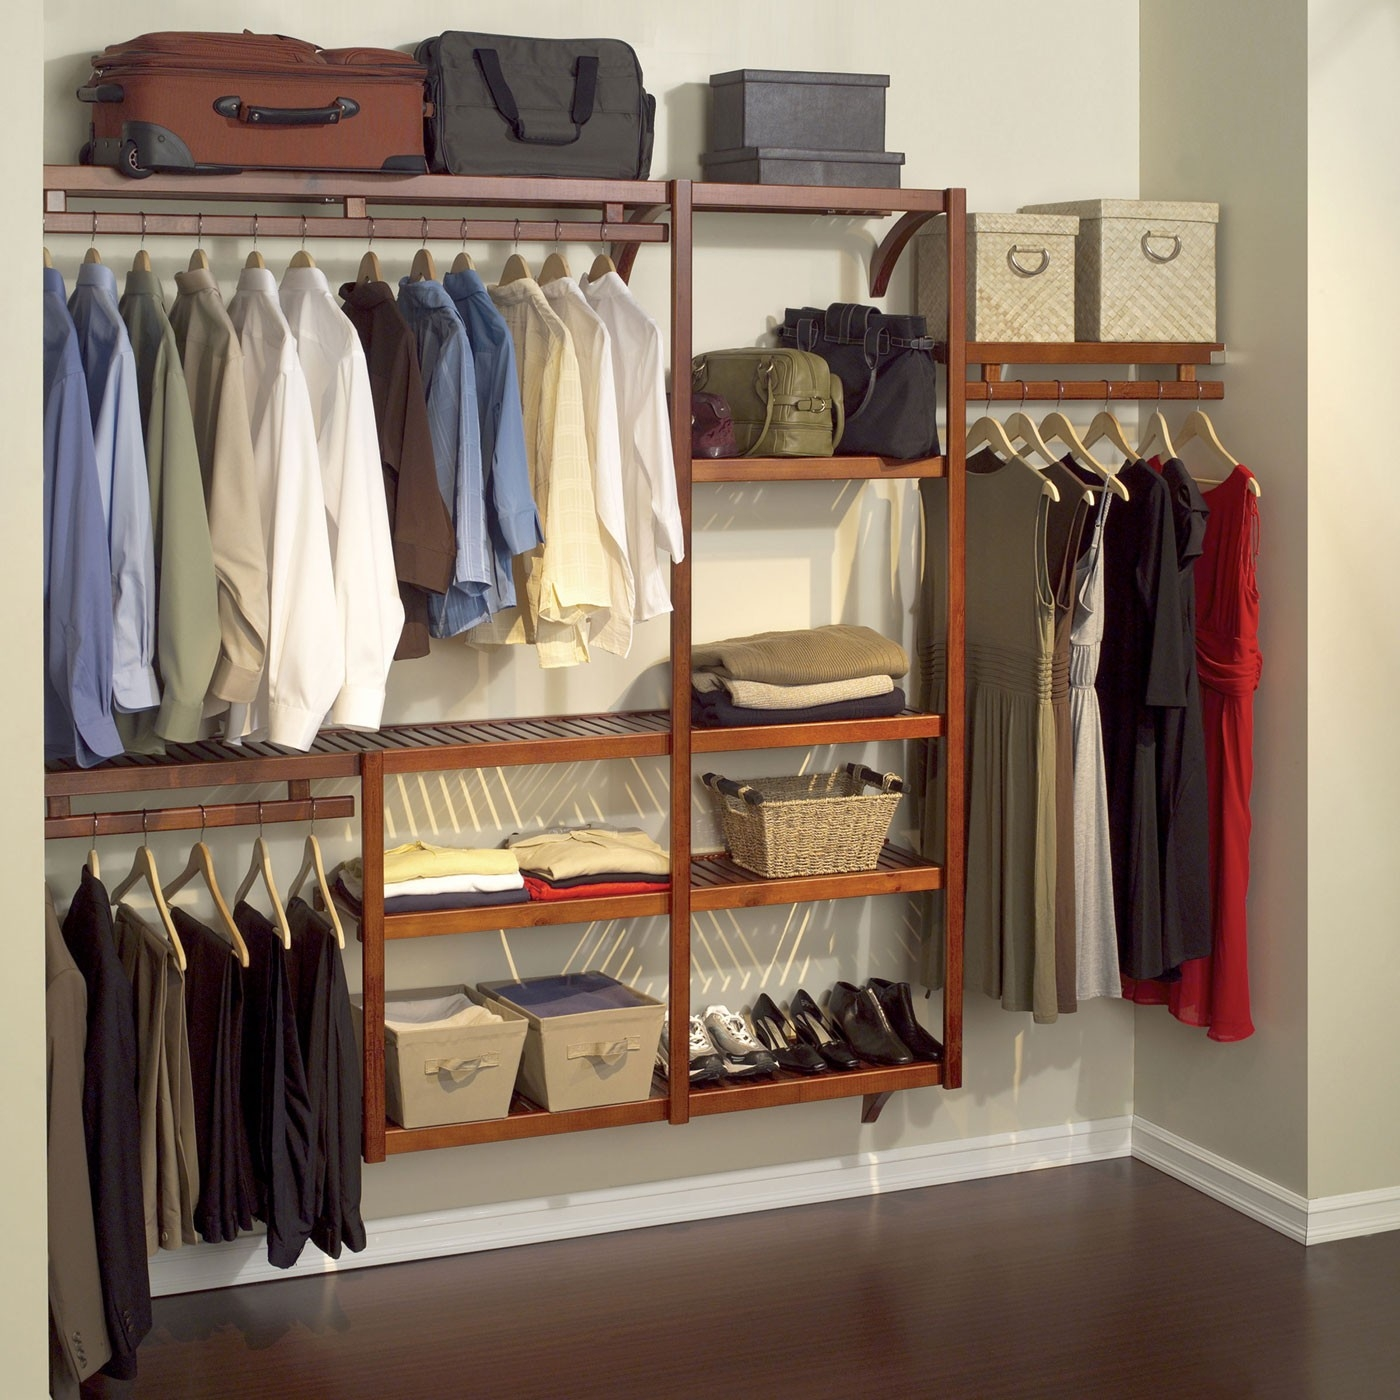 Bedroom Furniture Sets Clothes Hanger Bedroom Clothing Storage In Wardrobe Hangers Storages (Image 5 of 25)